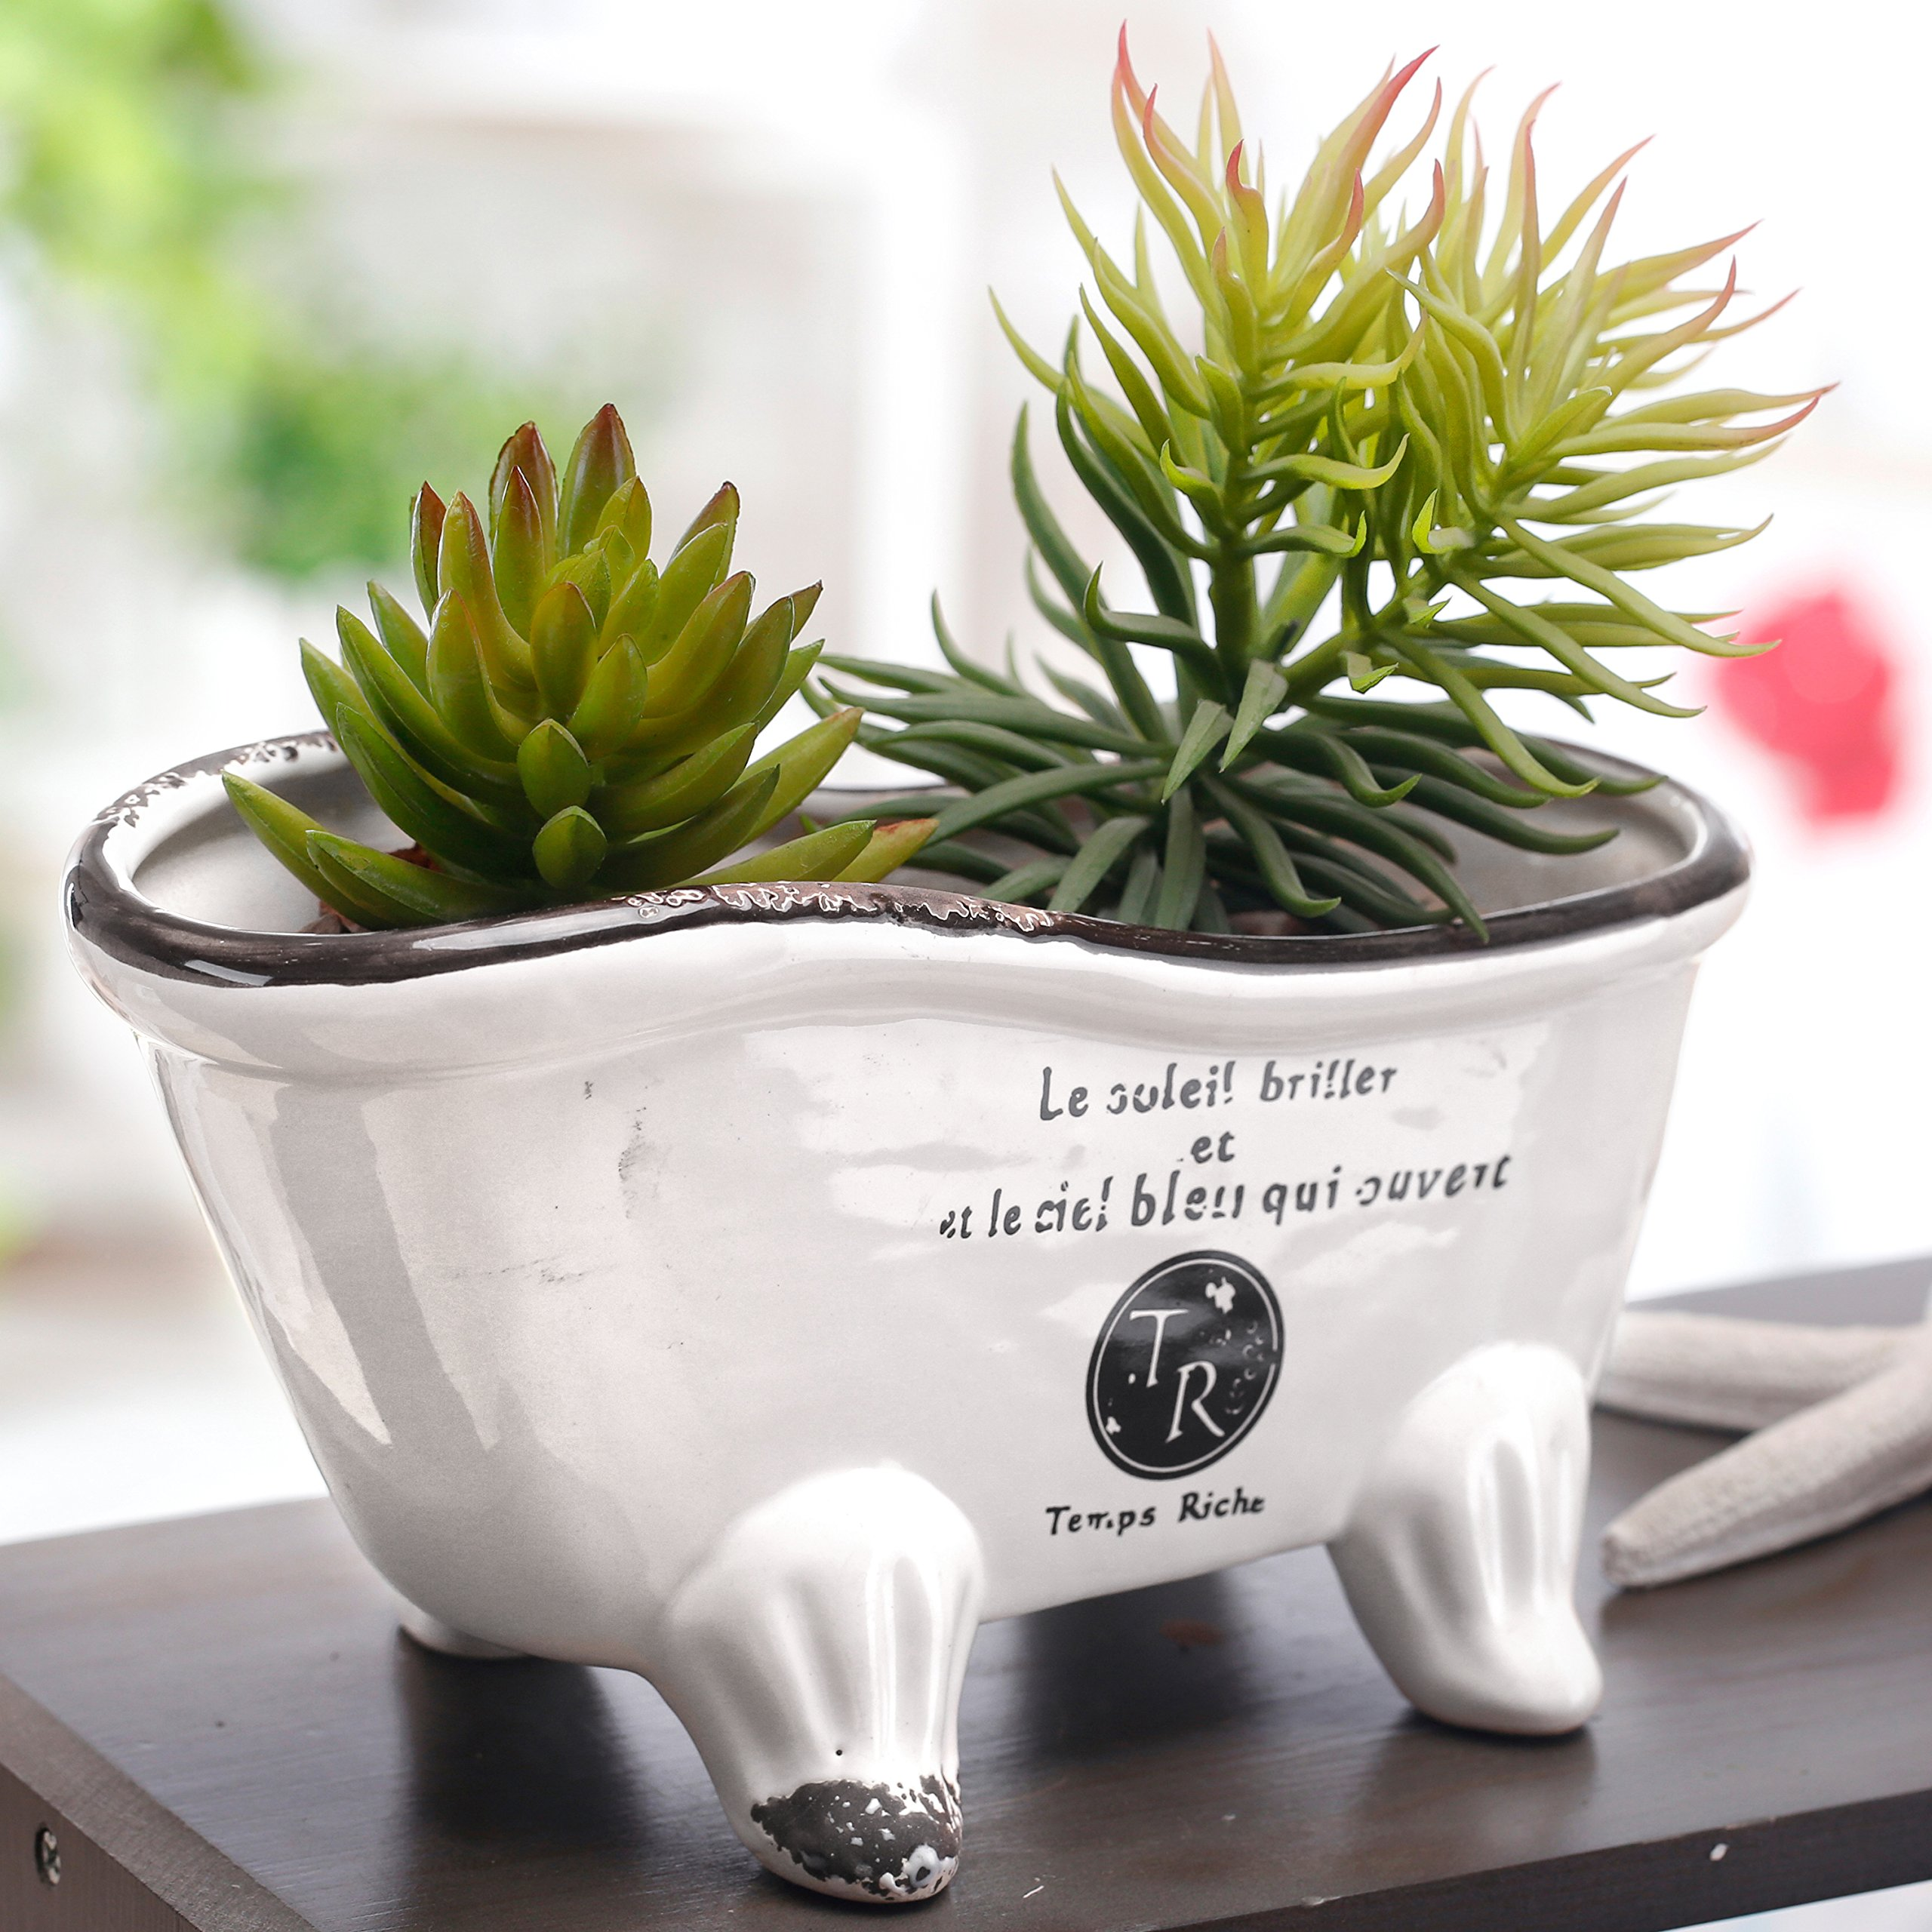 9-Inch, White Ceramic French Country Style Bathtub Succulent Planter, Soap Dish